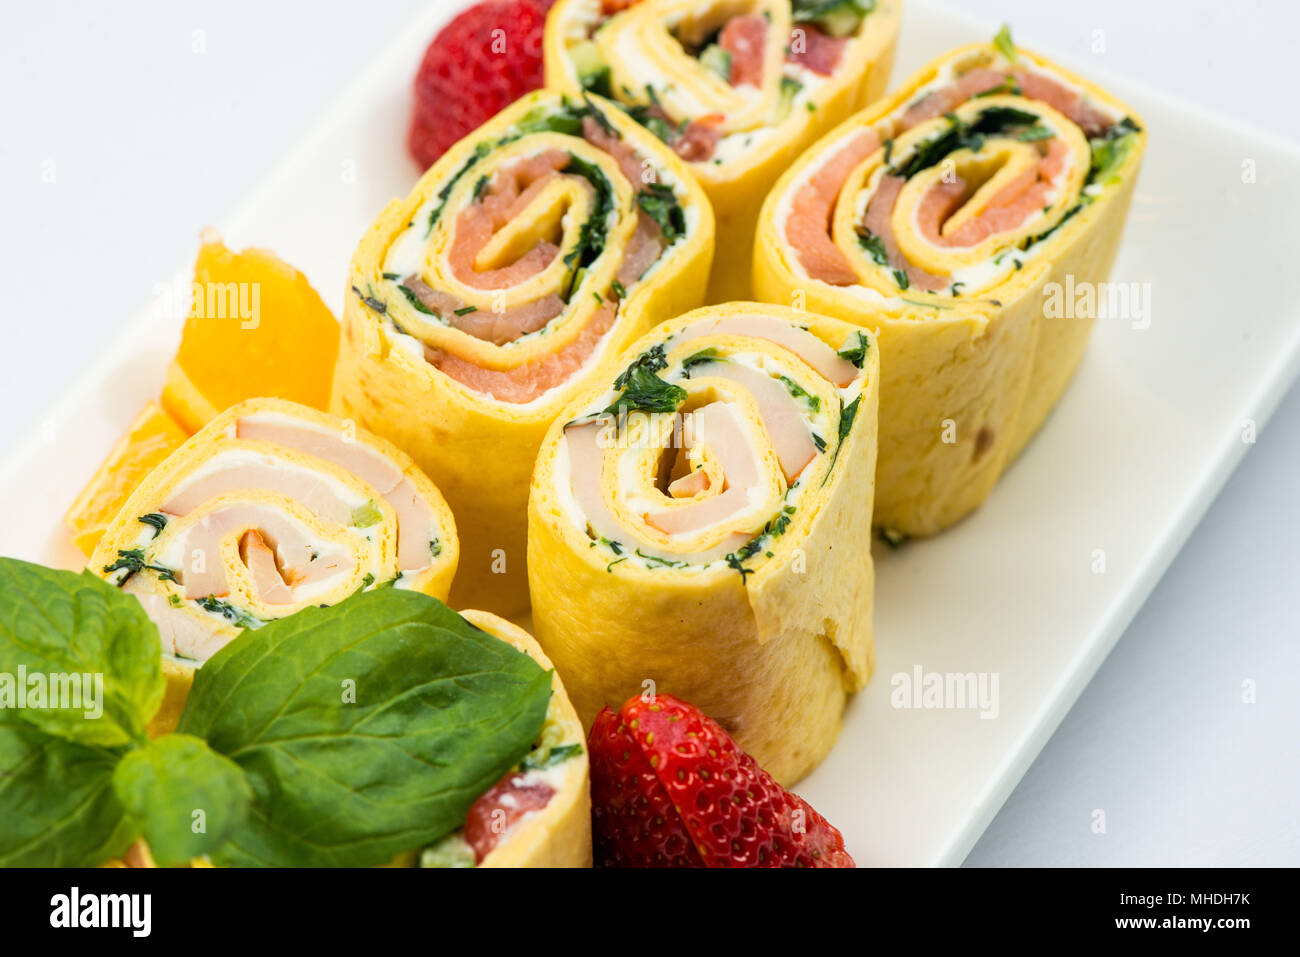 Rolls of thin pancakes with smoked salmon, horseradish cream cheese and rocket leaves on white plate on white background - Stock Image